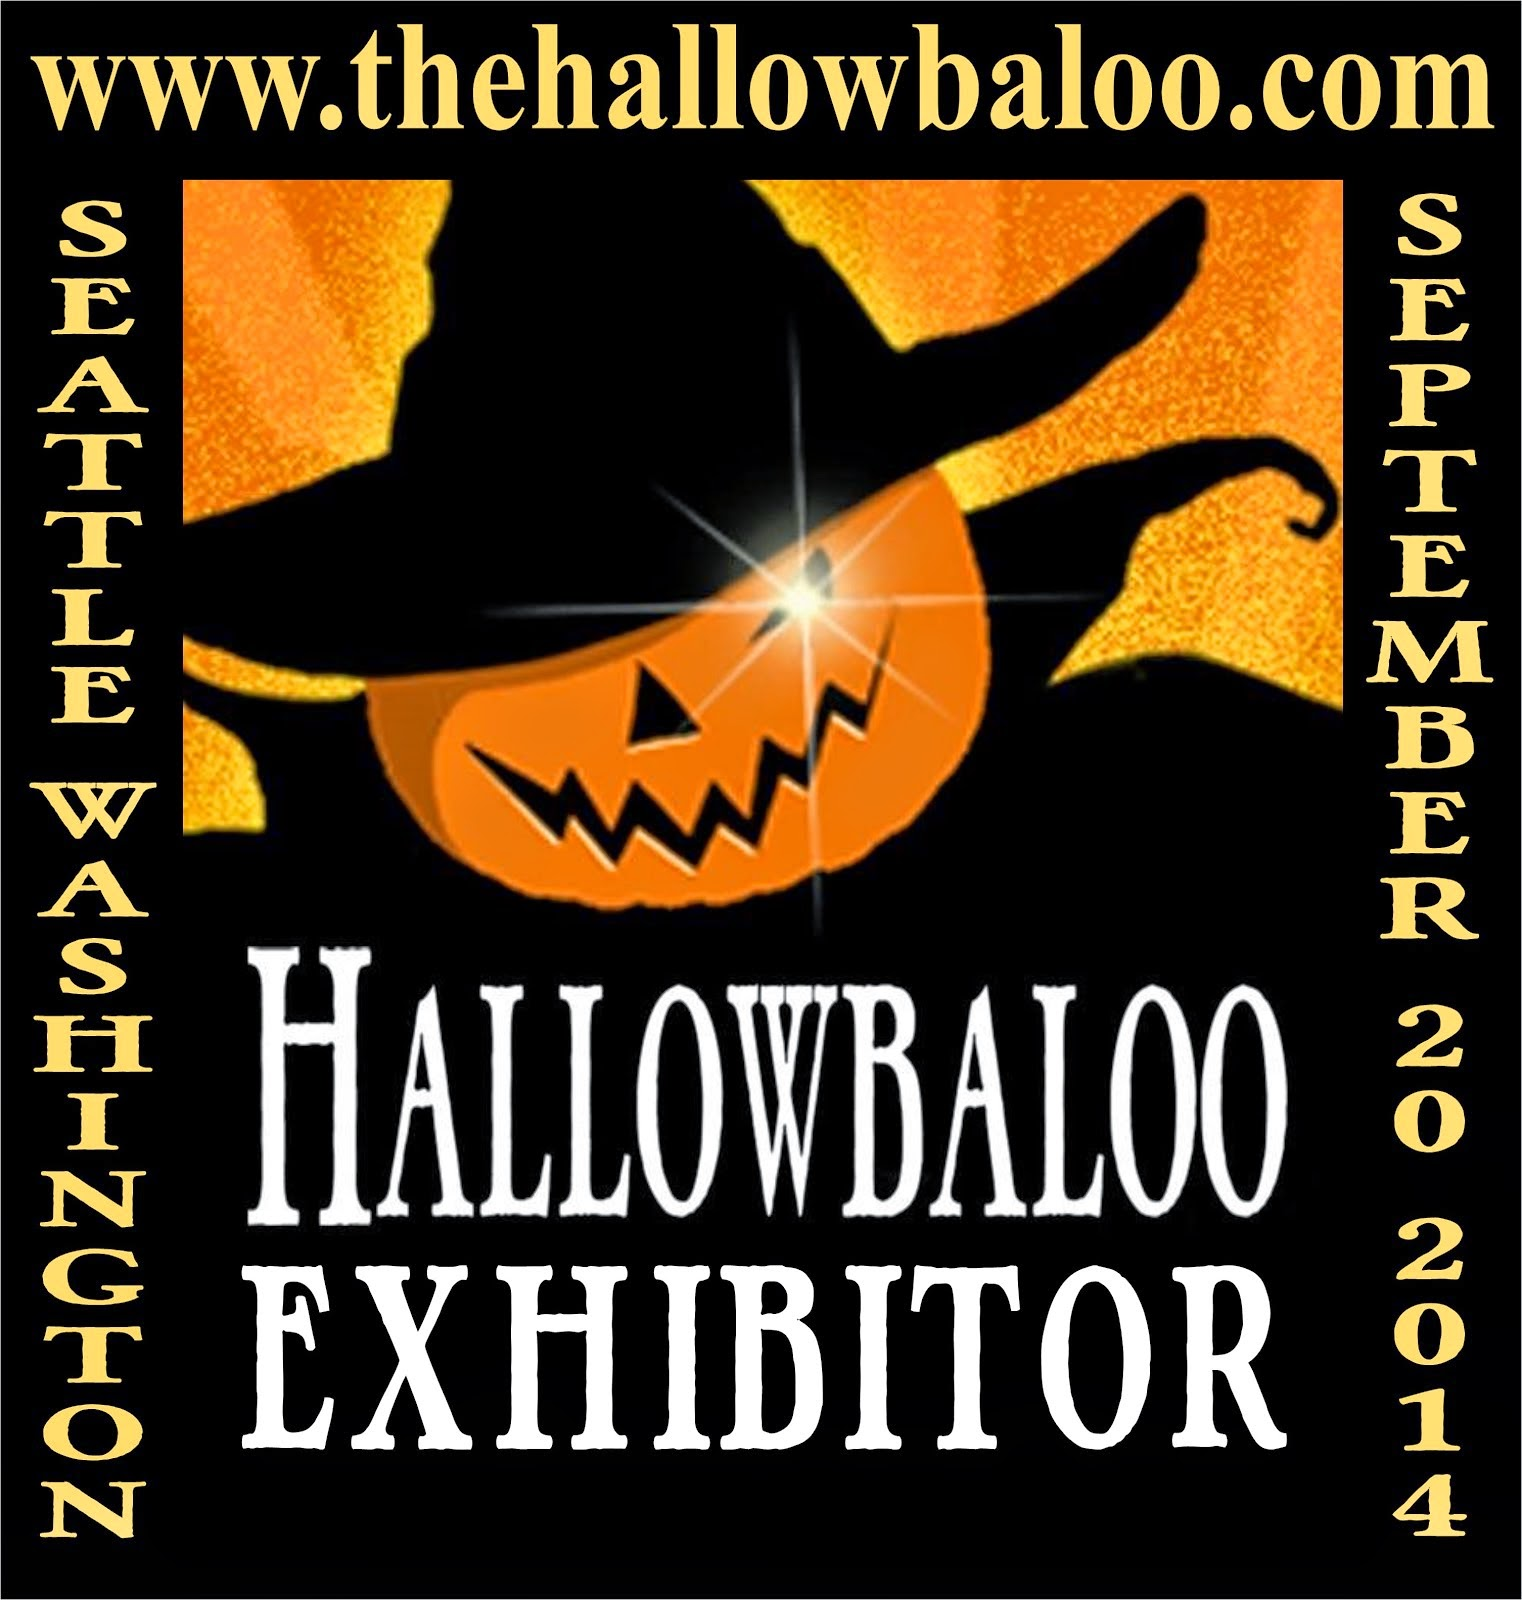 The Hallowbaloo